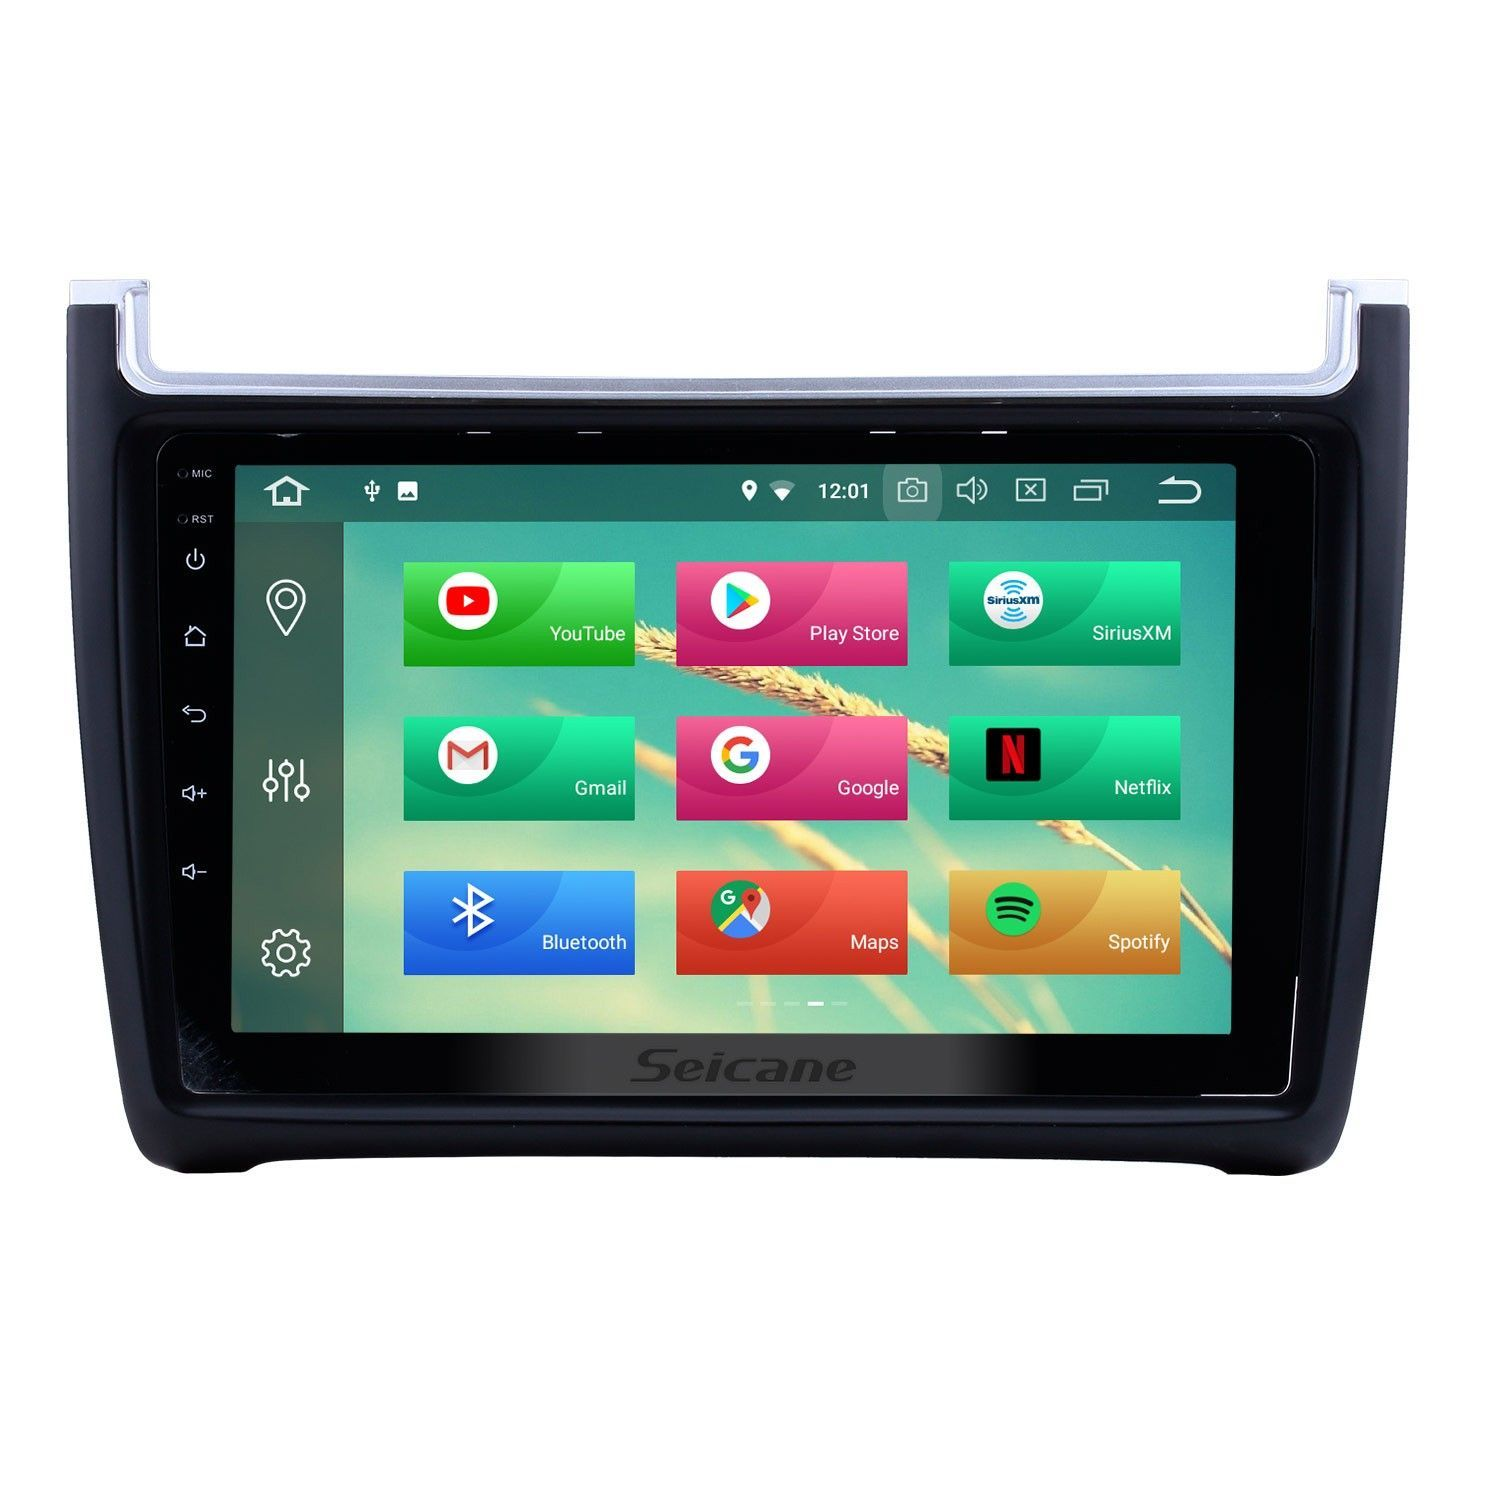 Seicane 2012 2013 2014 2015 VW Volkswagen POLO Android 8.1